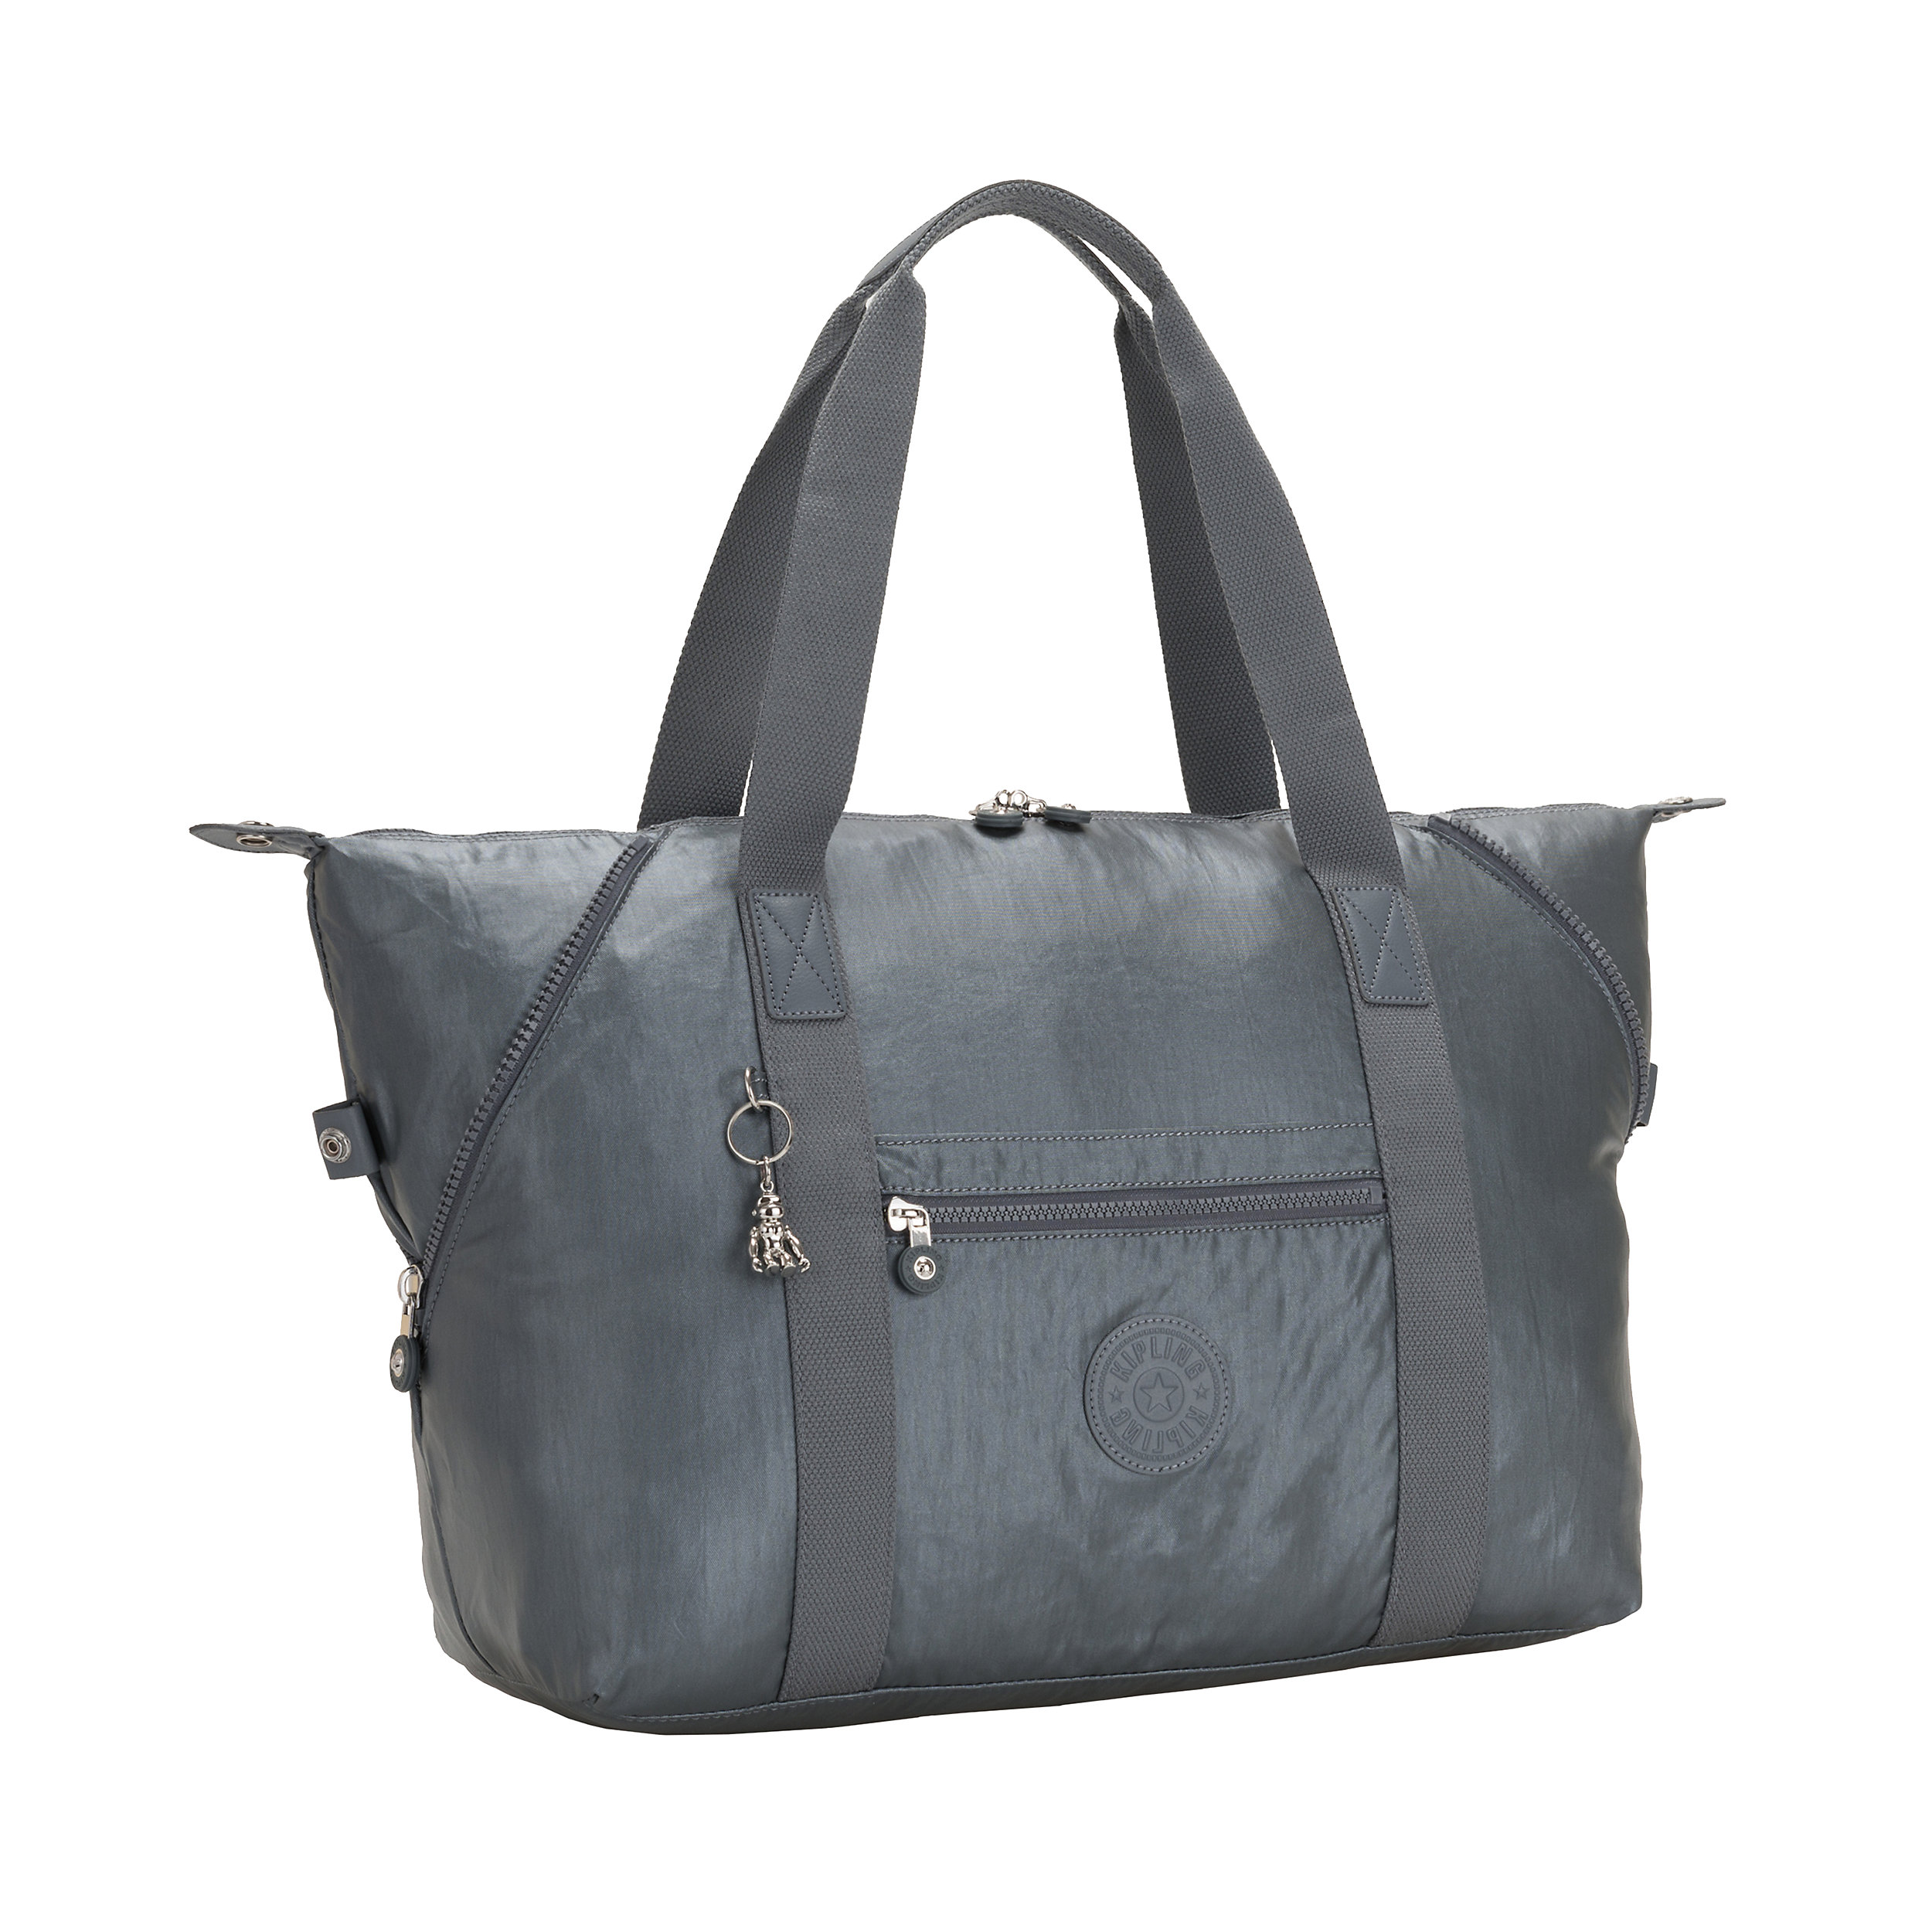 Reisetasche Art M BP Basic Plus 26 Liter